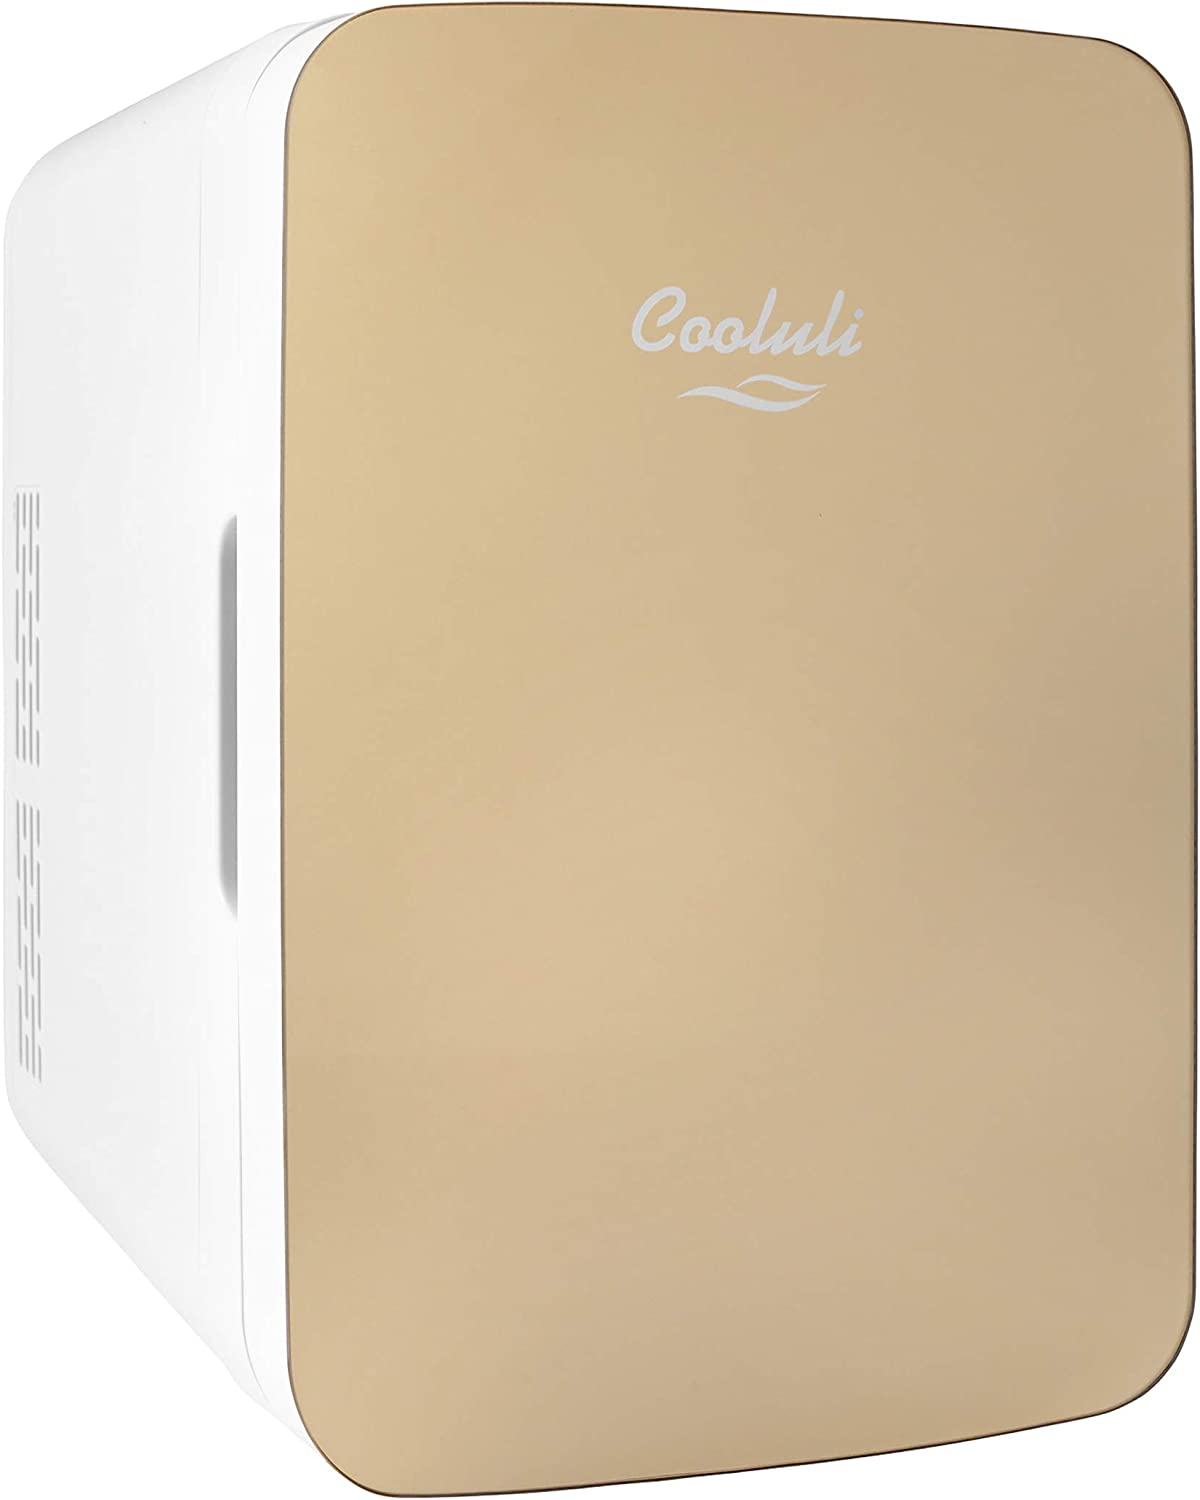 Cooluli Infinity Gold 10 Liter Compact Portable Cooler Warmer Mini Fridge for Bedroom, Office, Dorm, Car - Great for Skincare & Cosmetics (110-240V/12V)